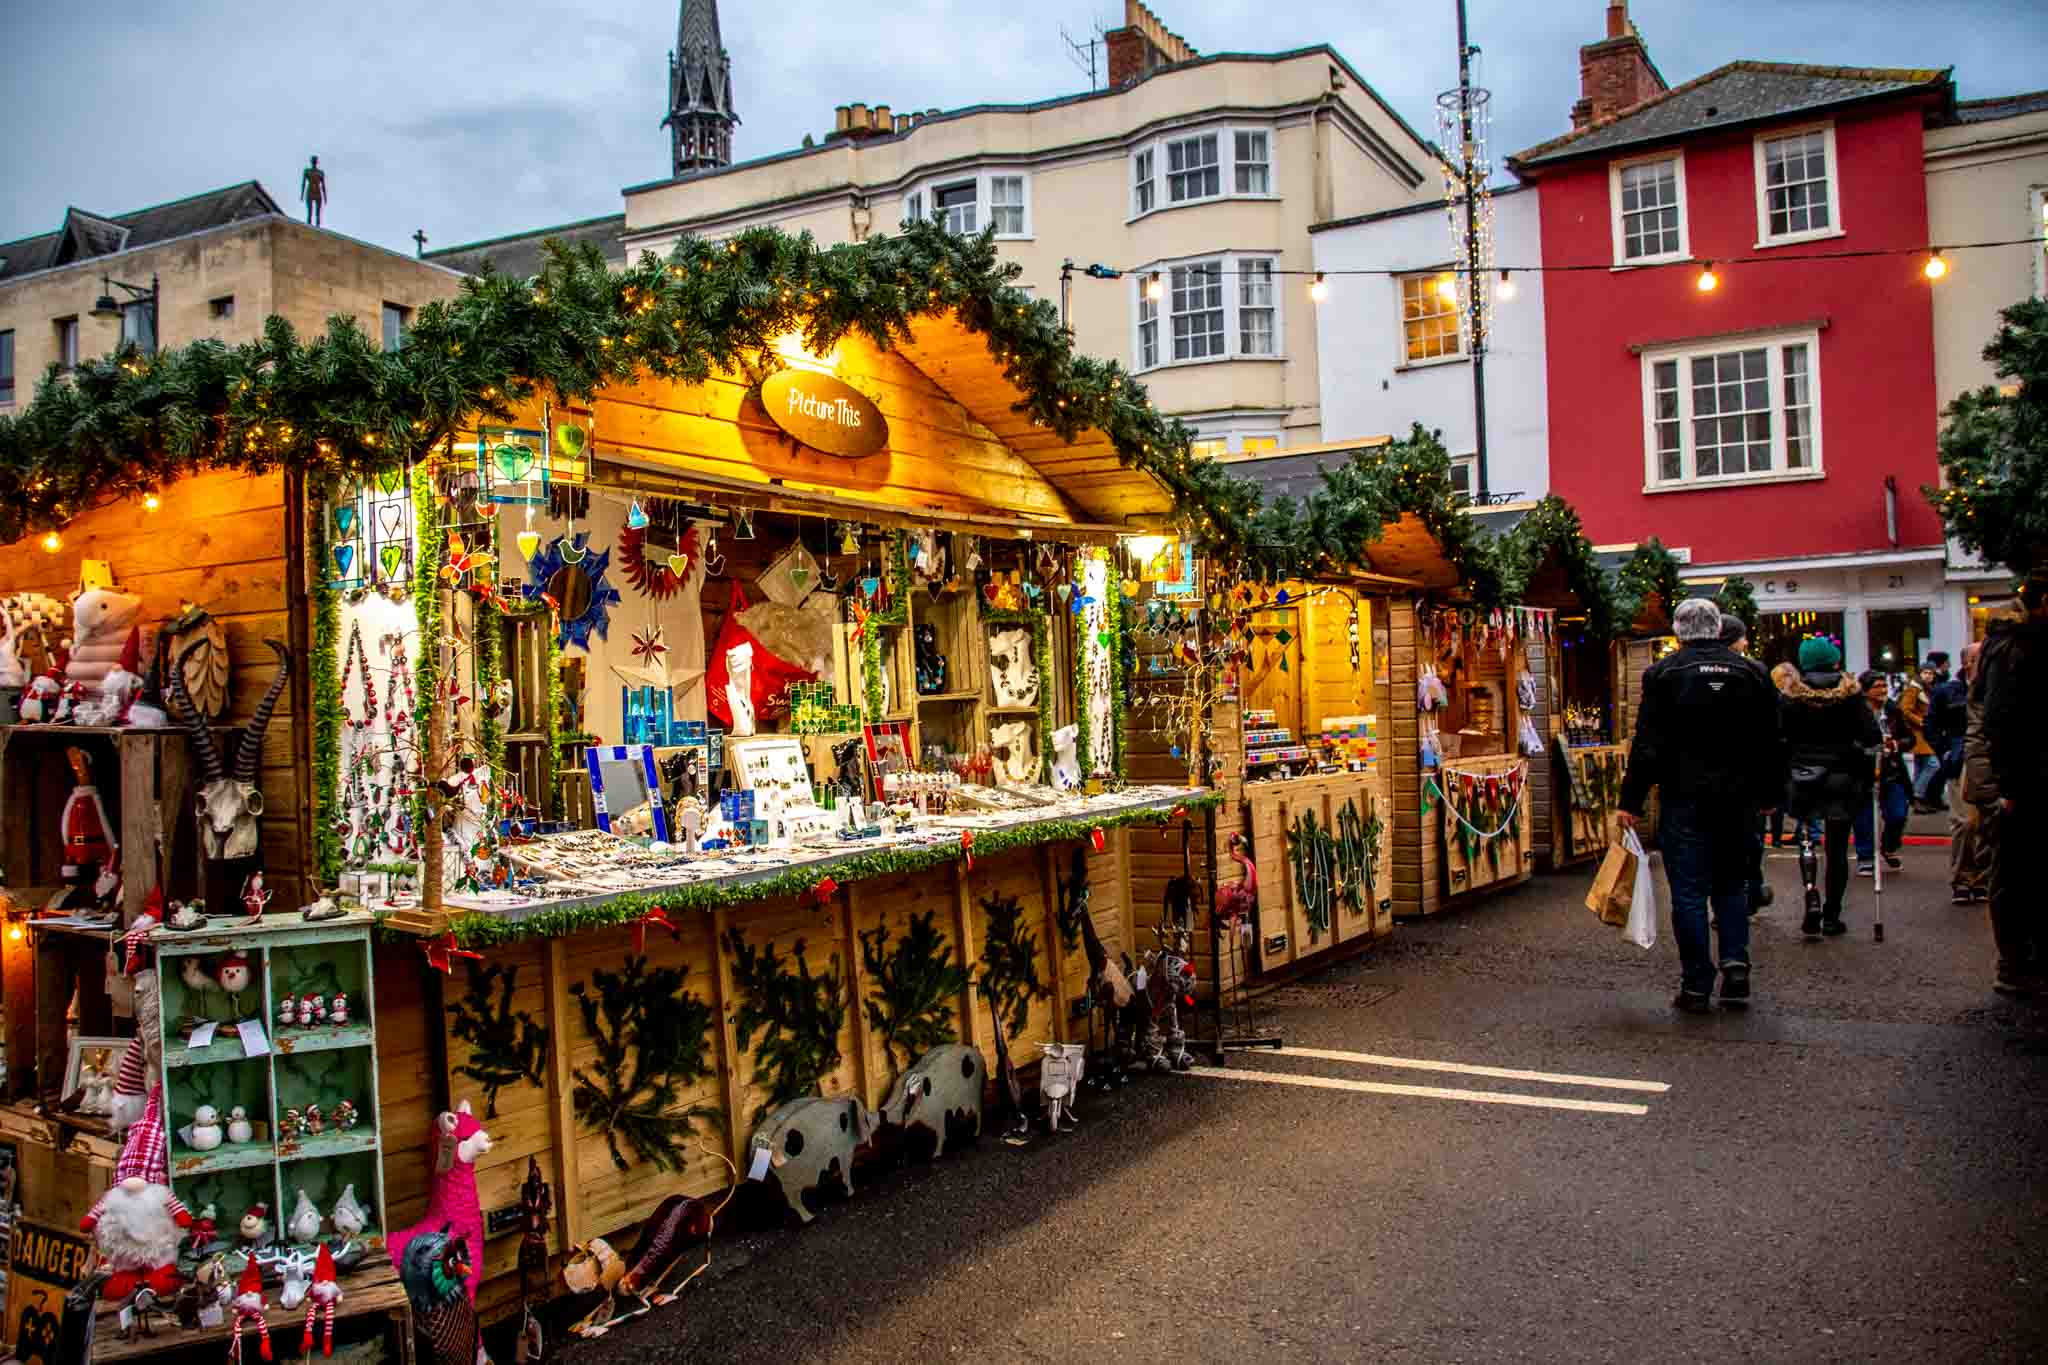 Wooden chalets seeling merchandise at the Oxford Christmas Market in England